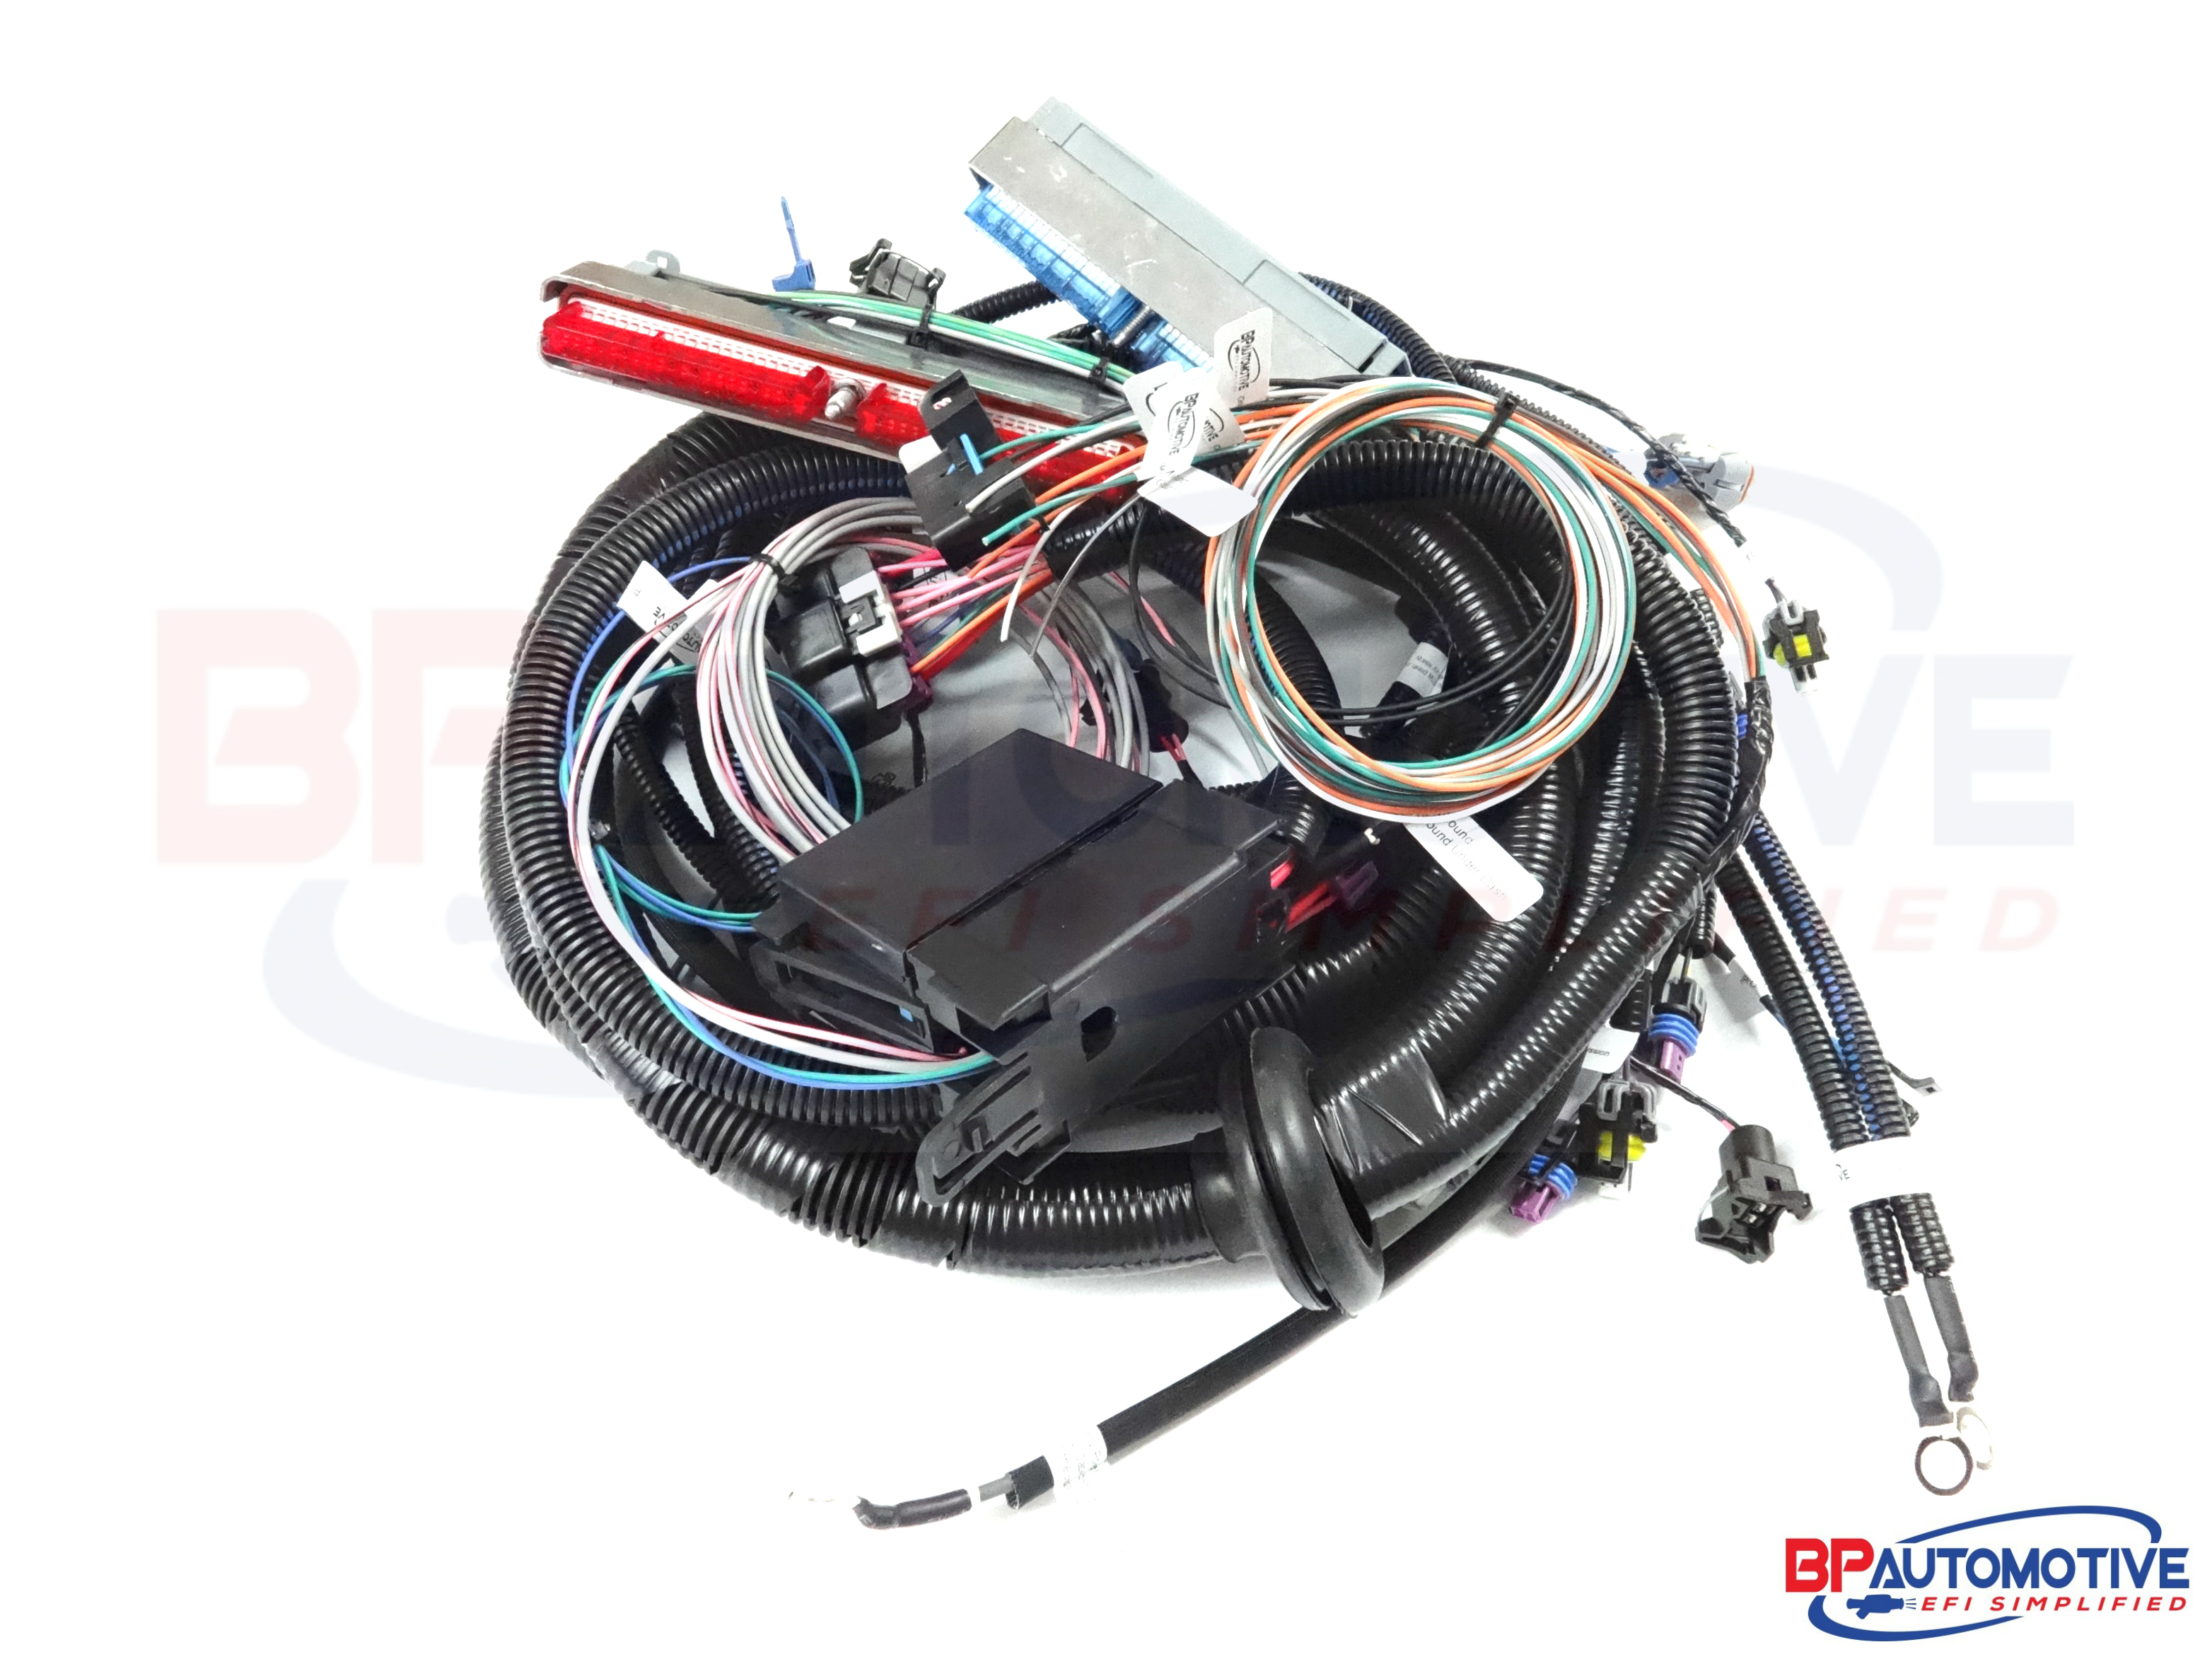 Ls1 Standalone Wiring Harness For Sale : Diy standalone harness ls camaro wire